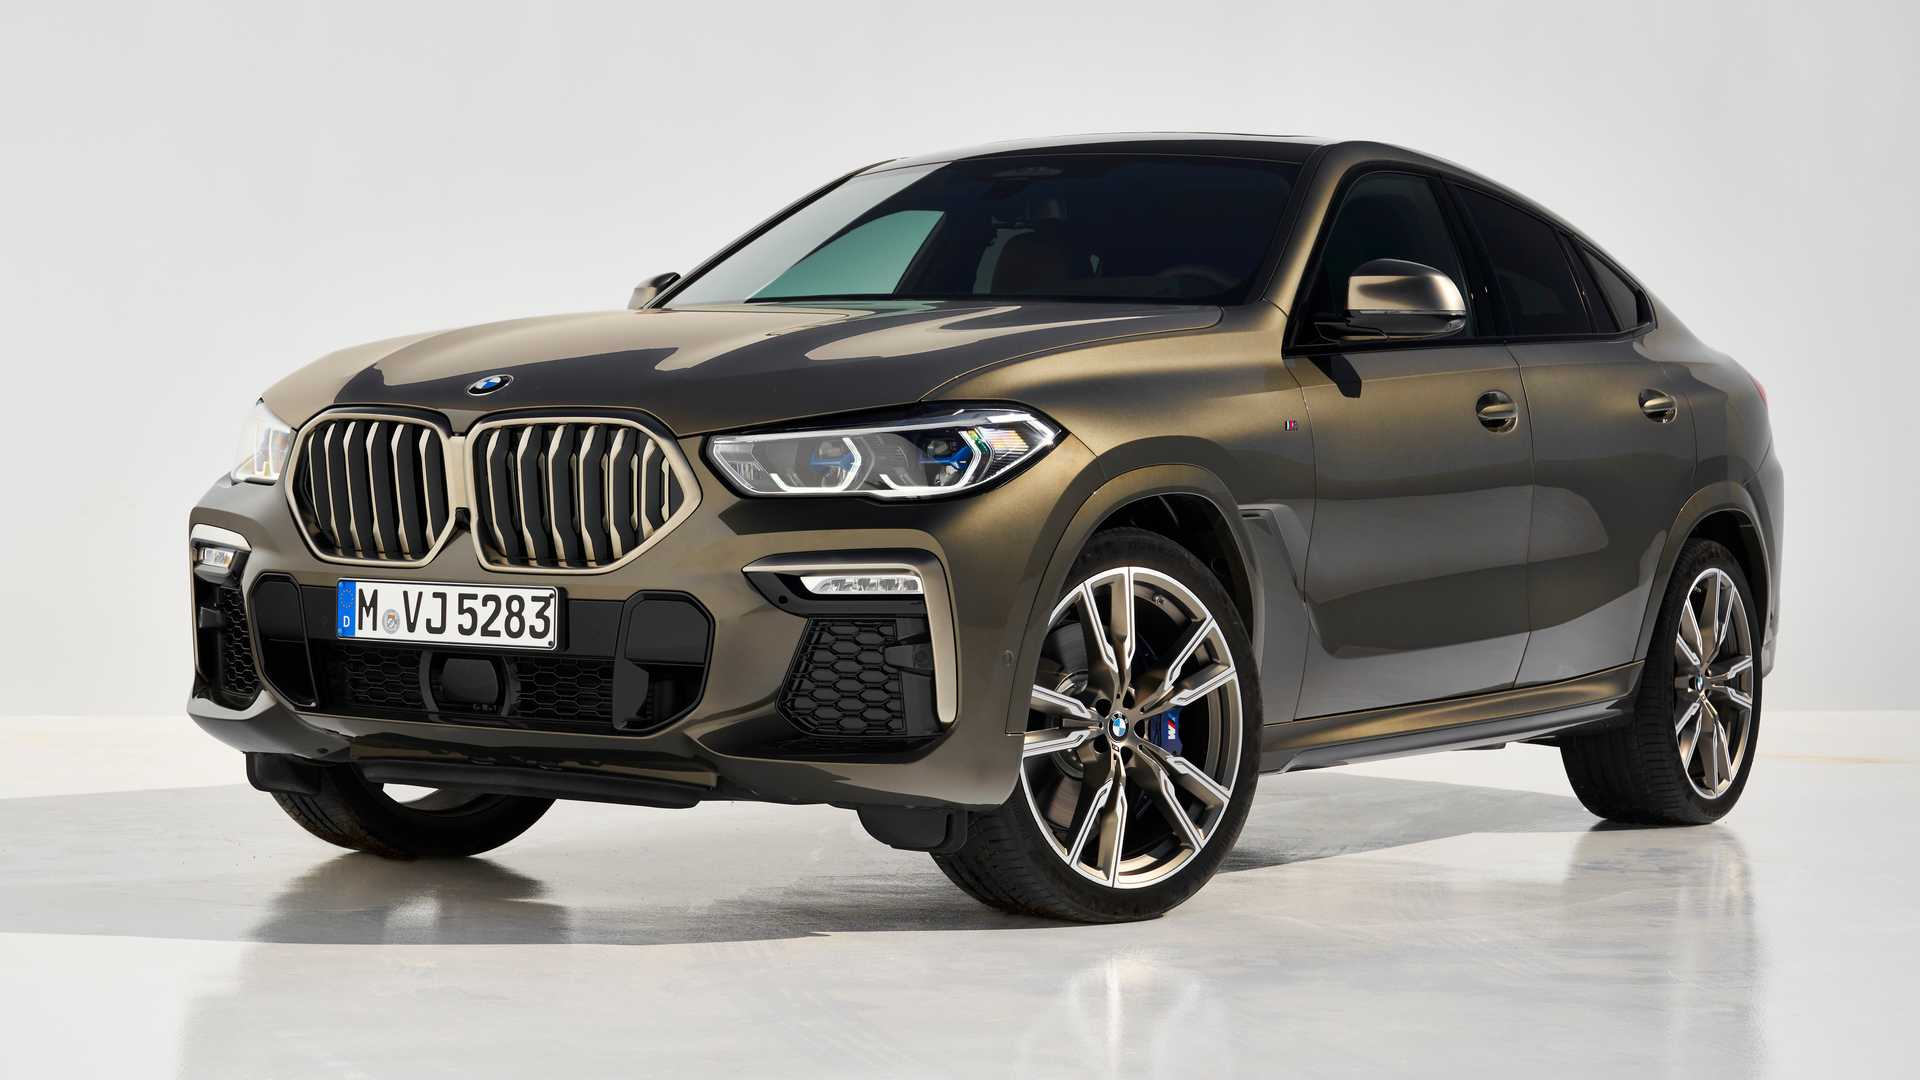 2020 Bmw X6 Officially Revealed Available With